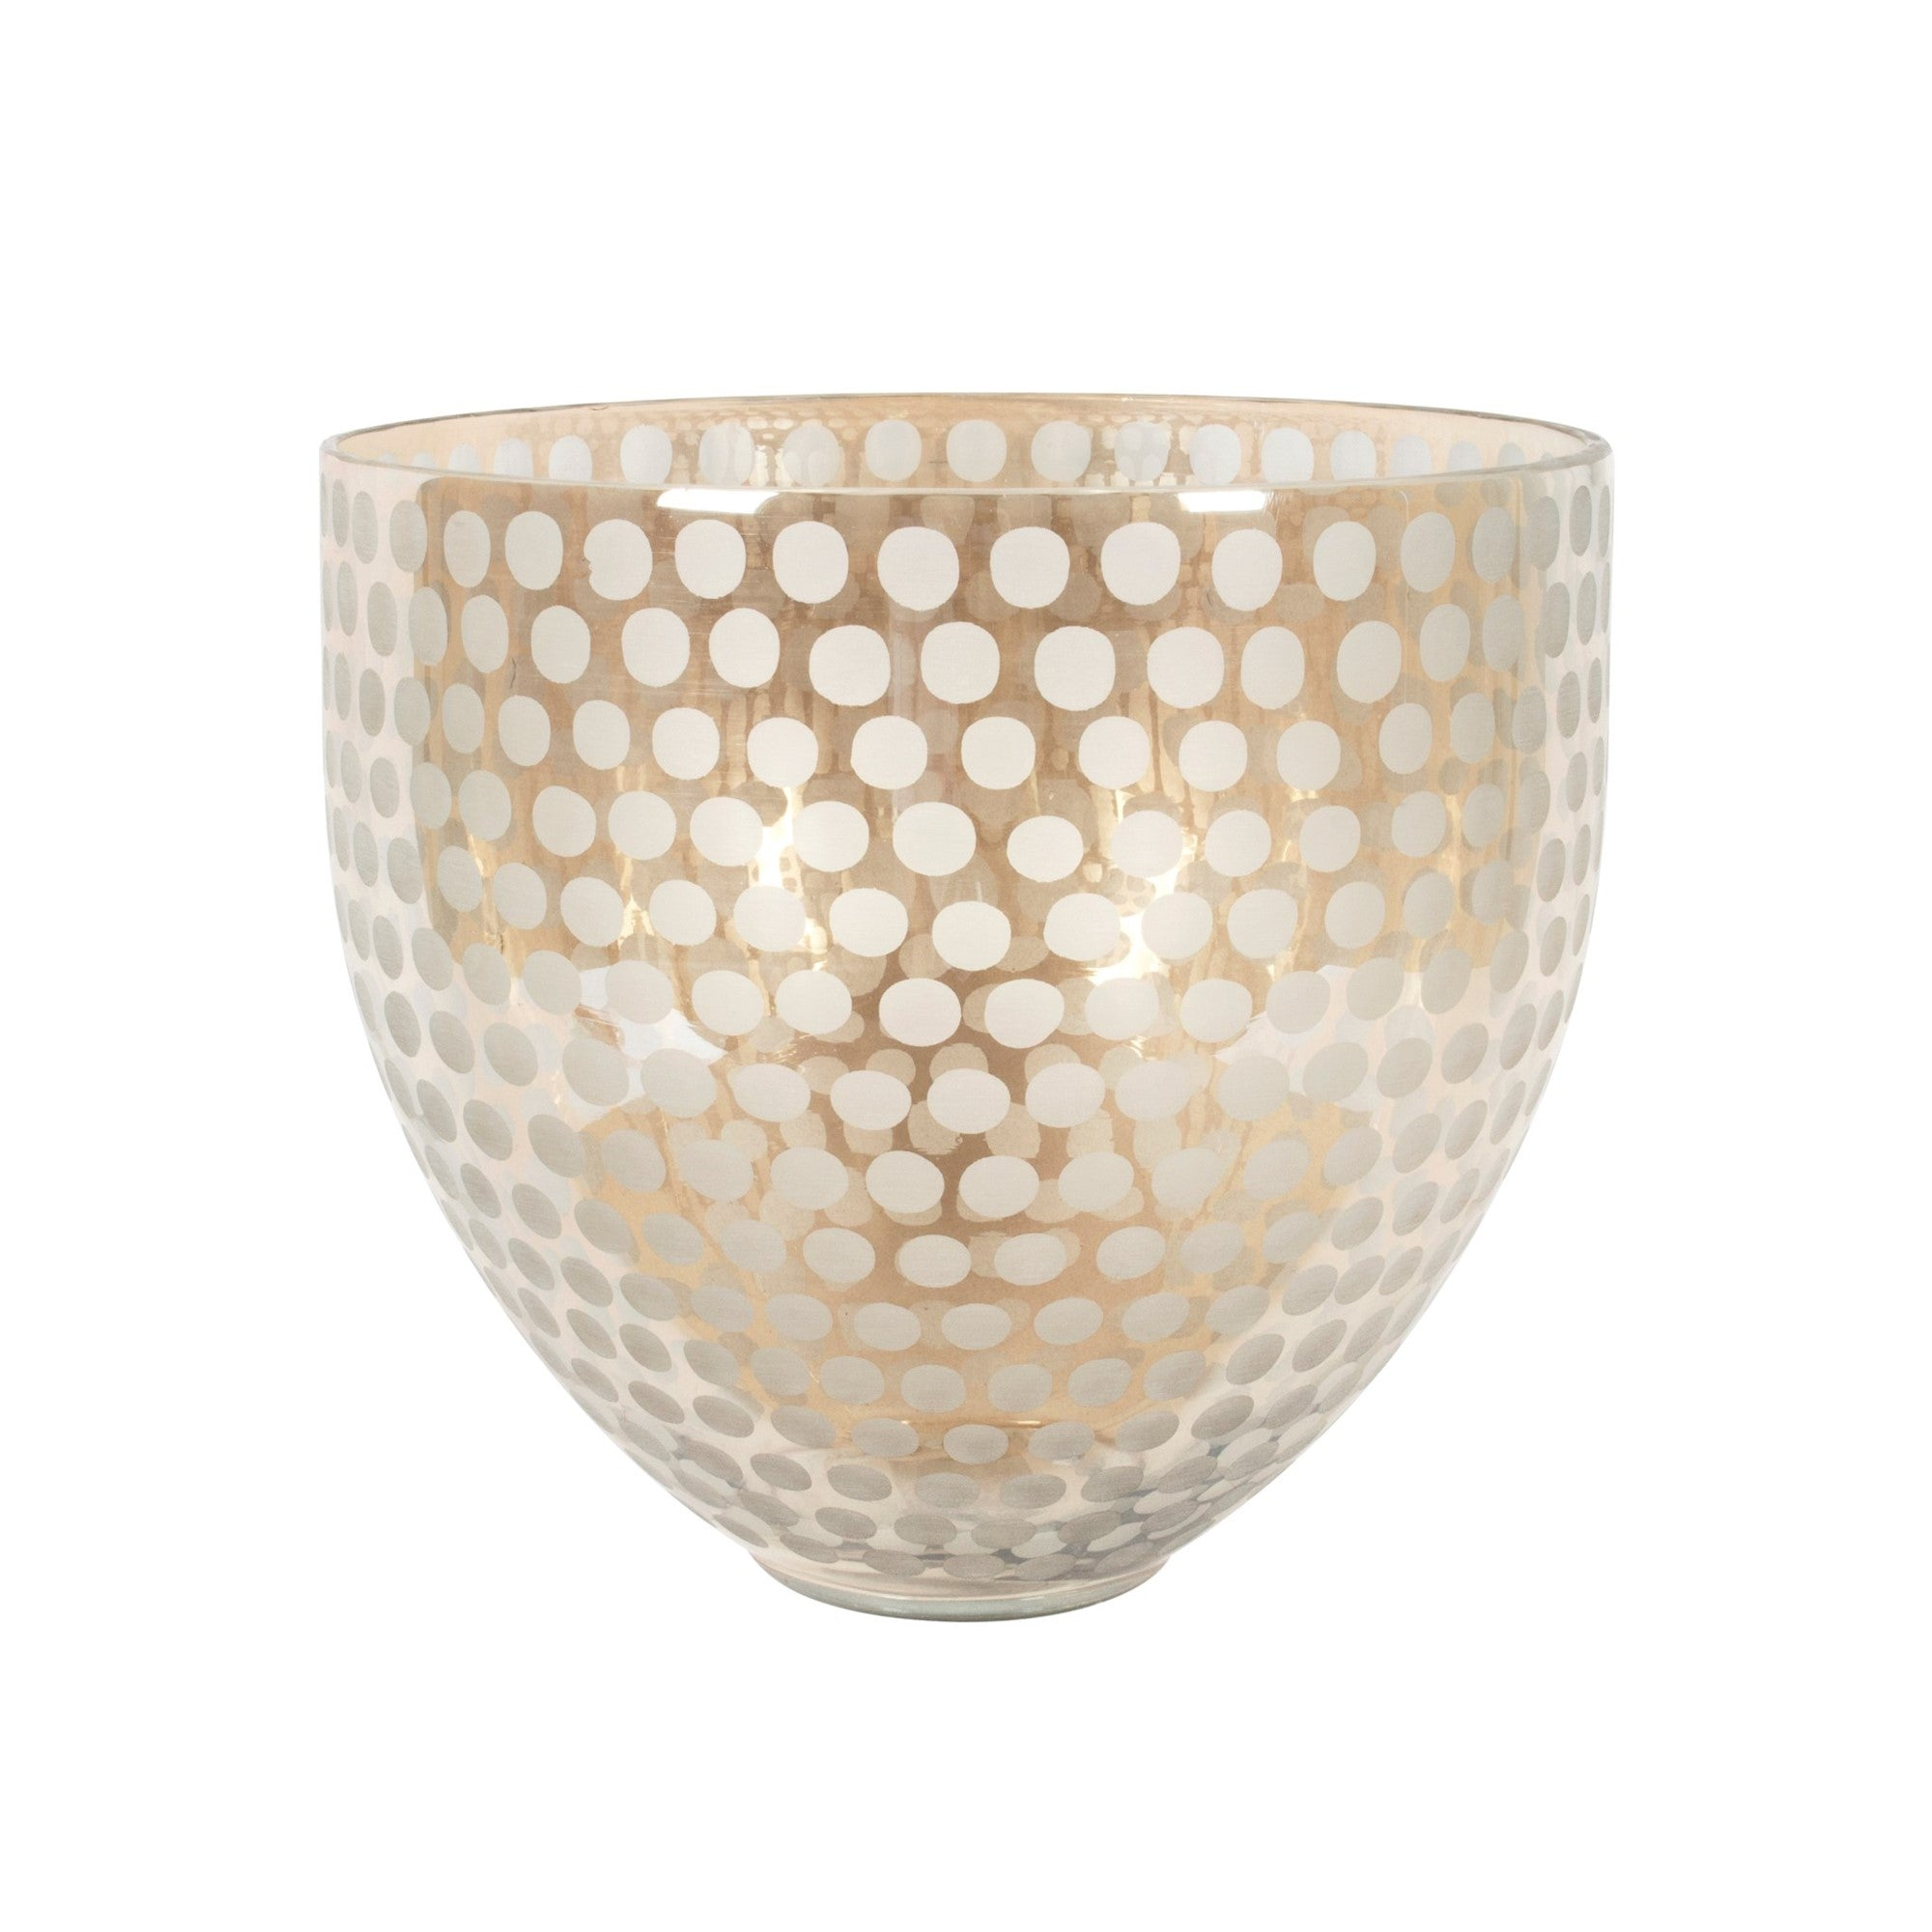 Gold Luster Glass Bowl with Dots